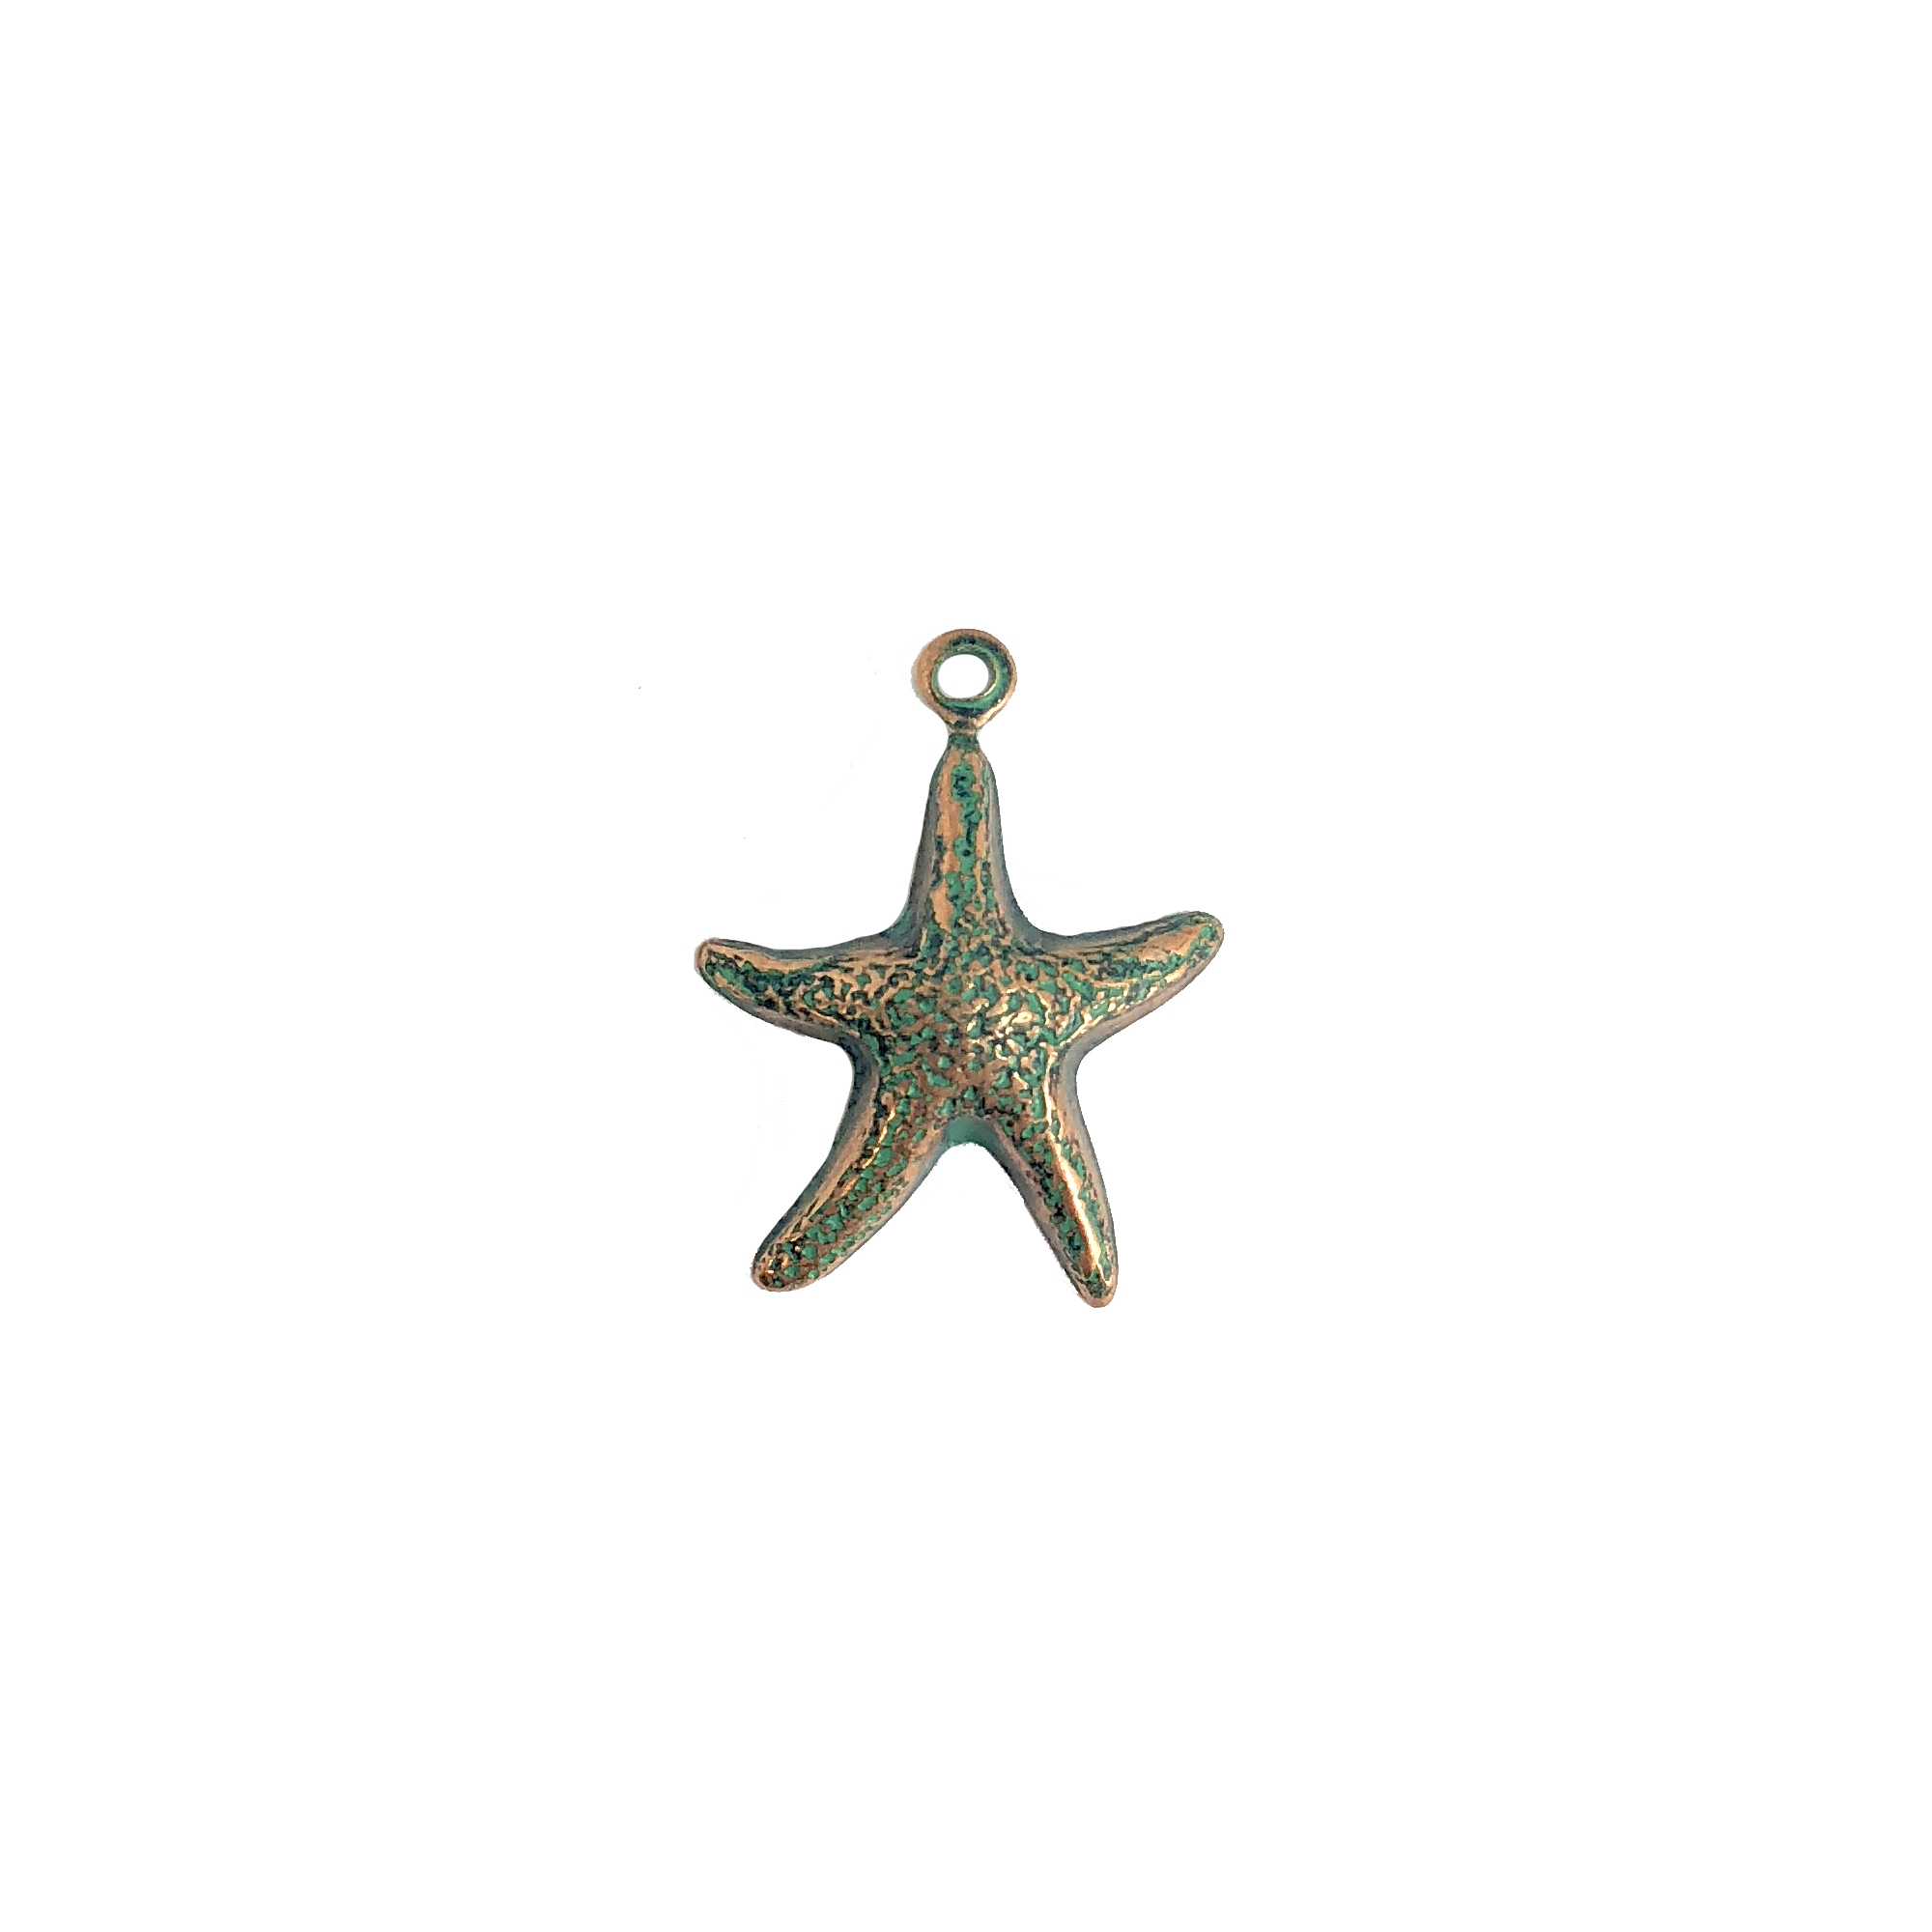 brass starfish, beach jewelry, aqua copper patina, 15x14mm, 08220, ocean, beach, seaside, sea, starfish, star fish, fish, jewelry supplies, Bsue Boutiques